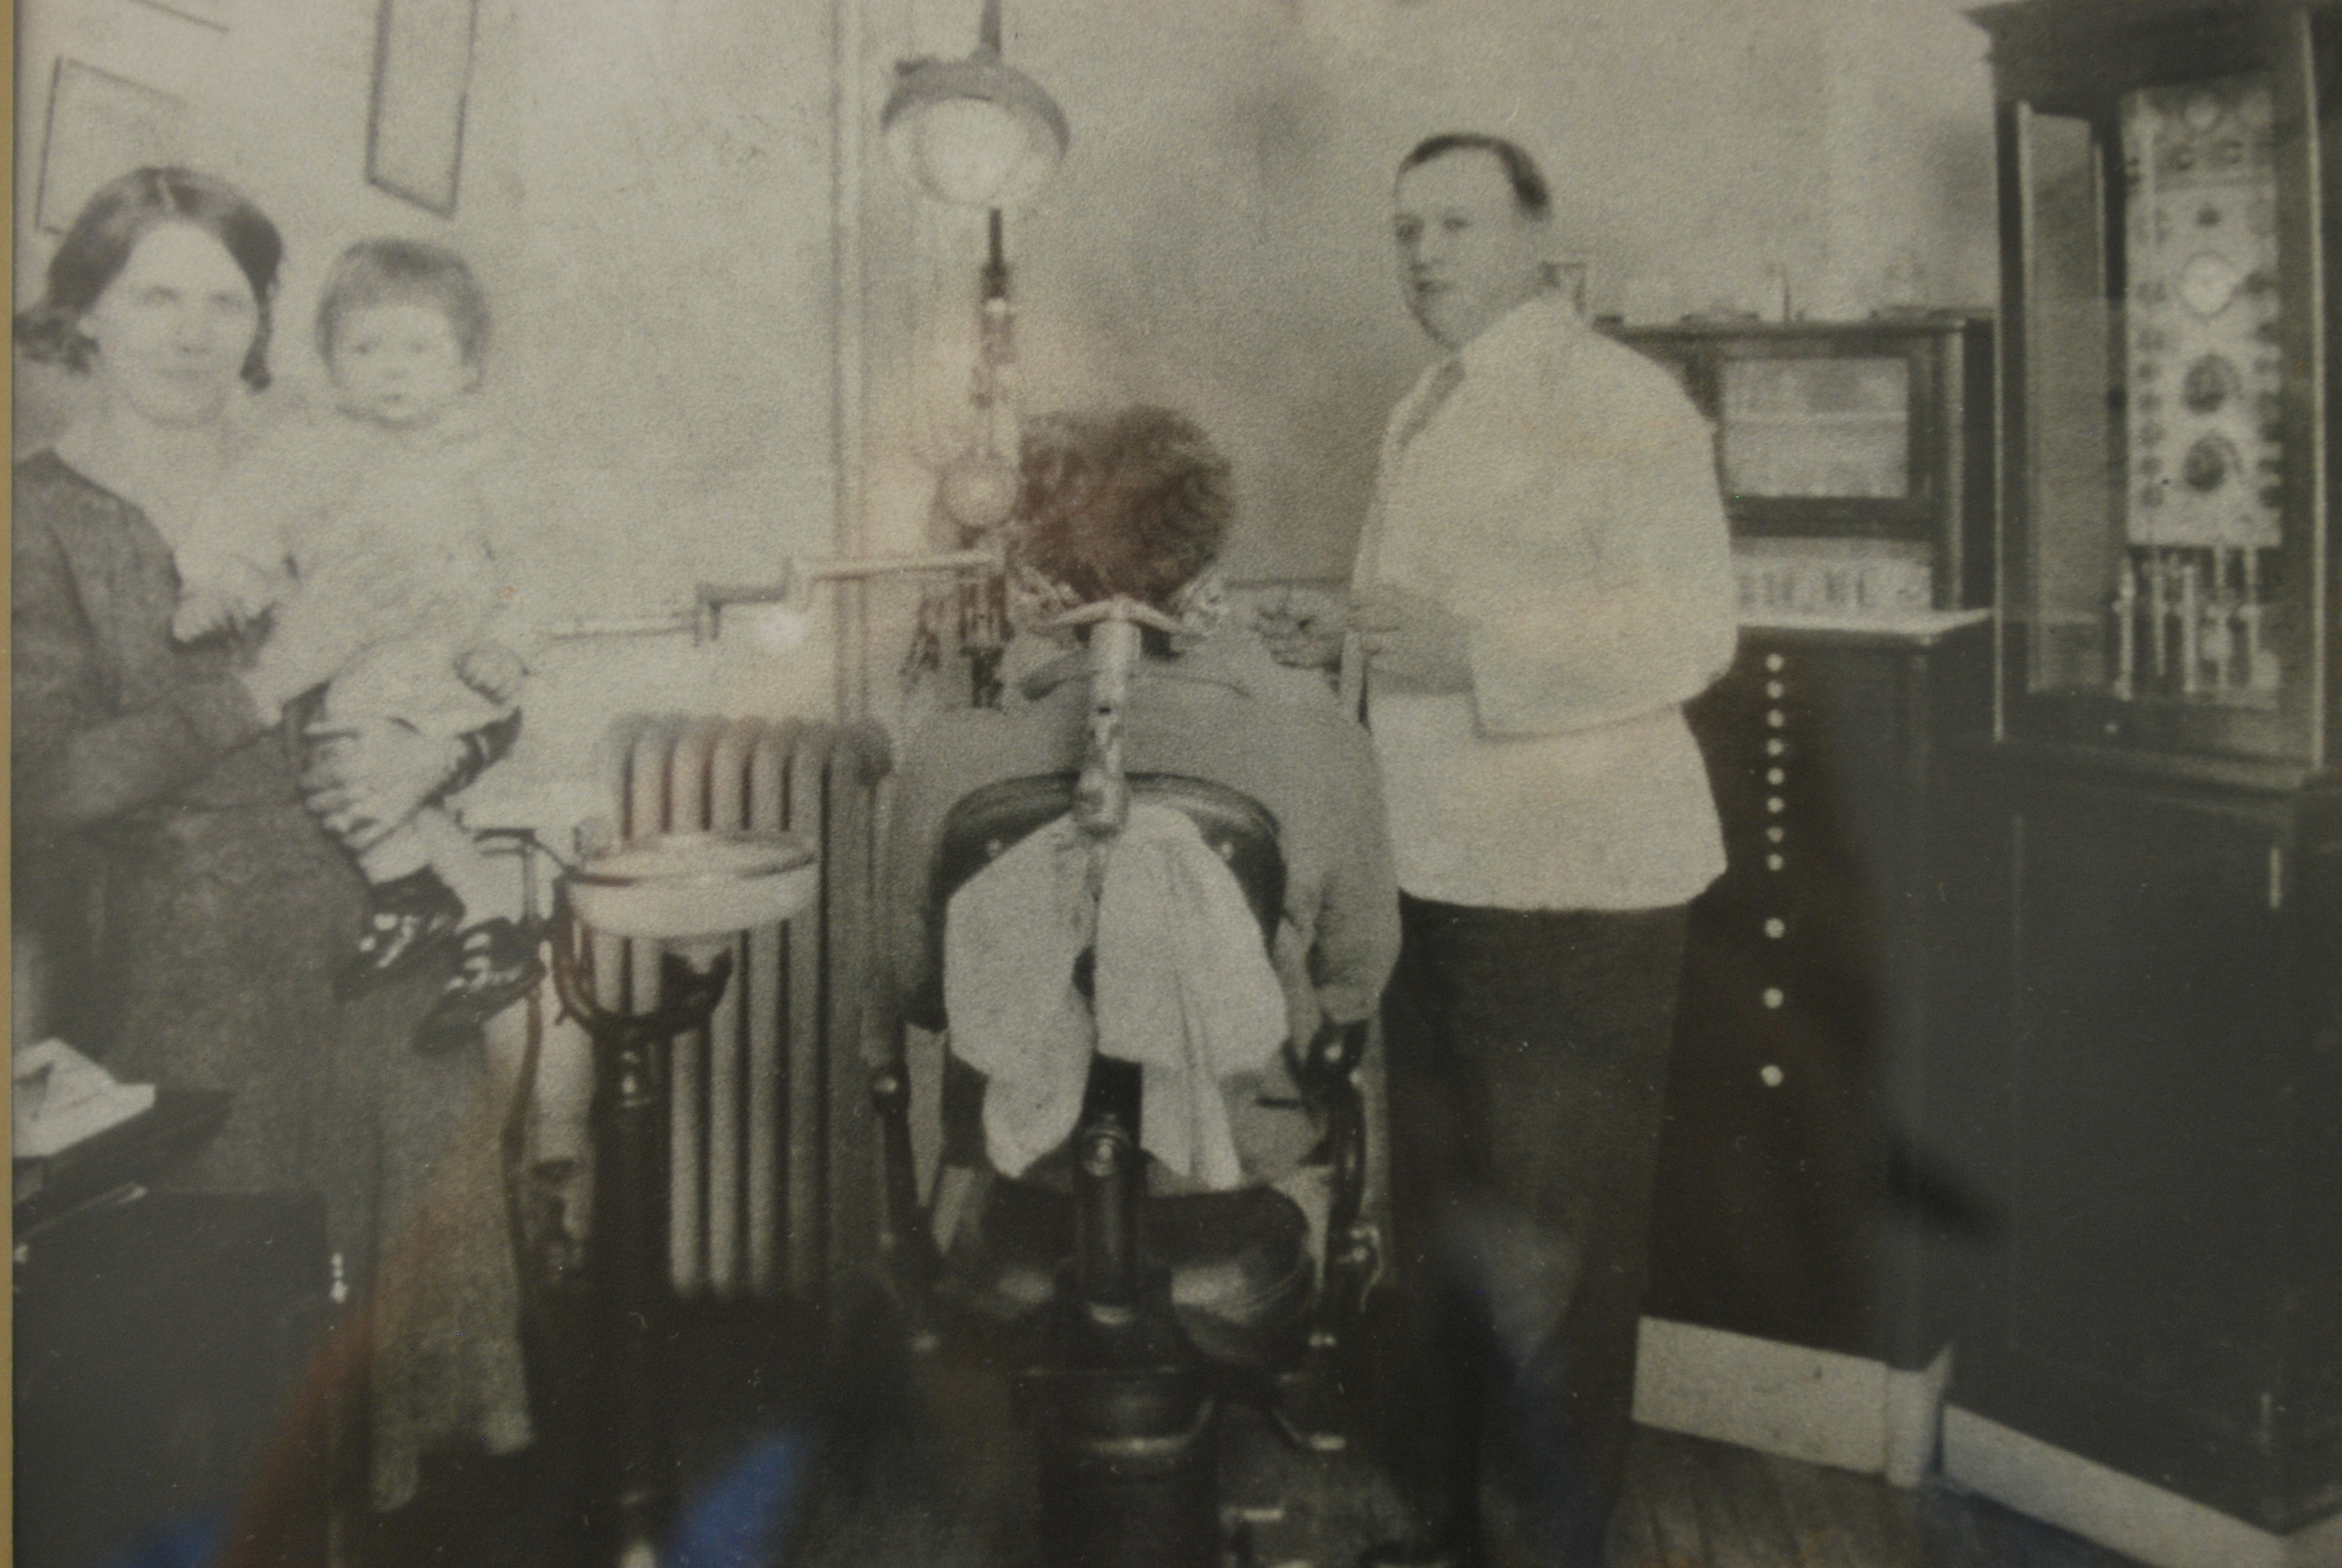 Dr. Hobart McKinley Patterson and wife, Nina with son George